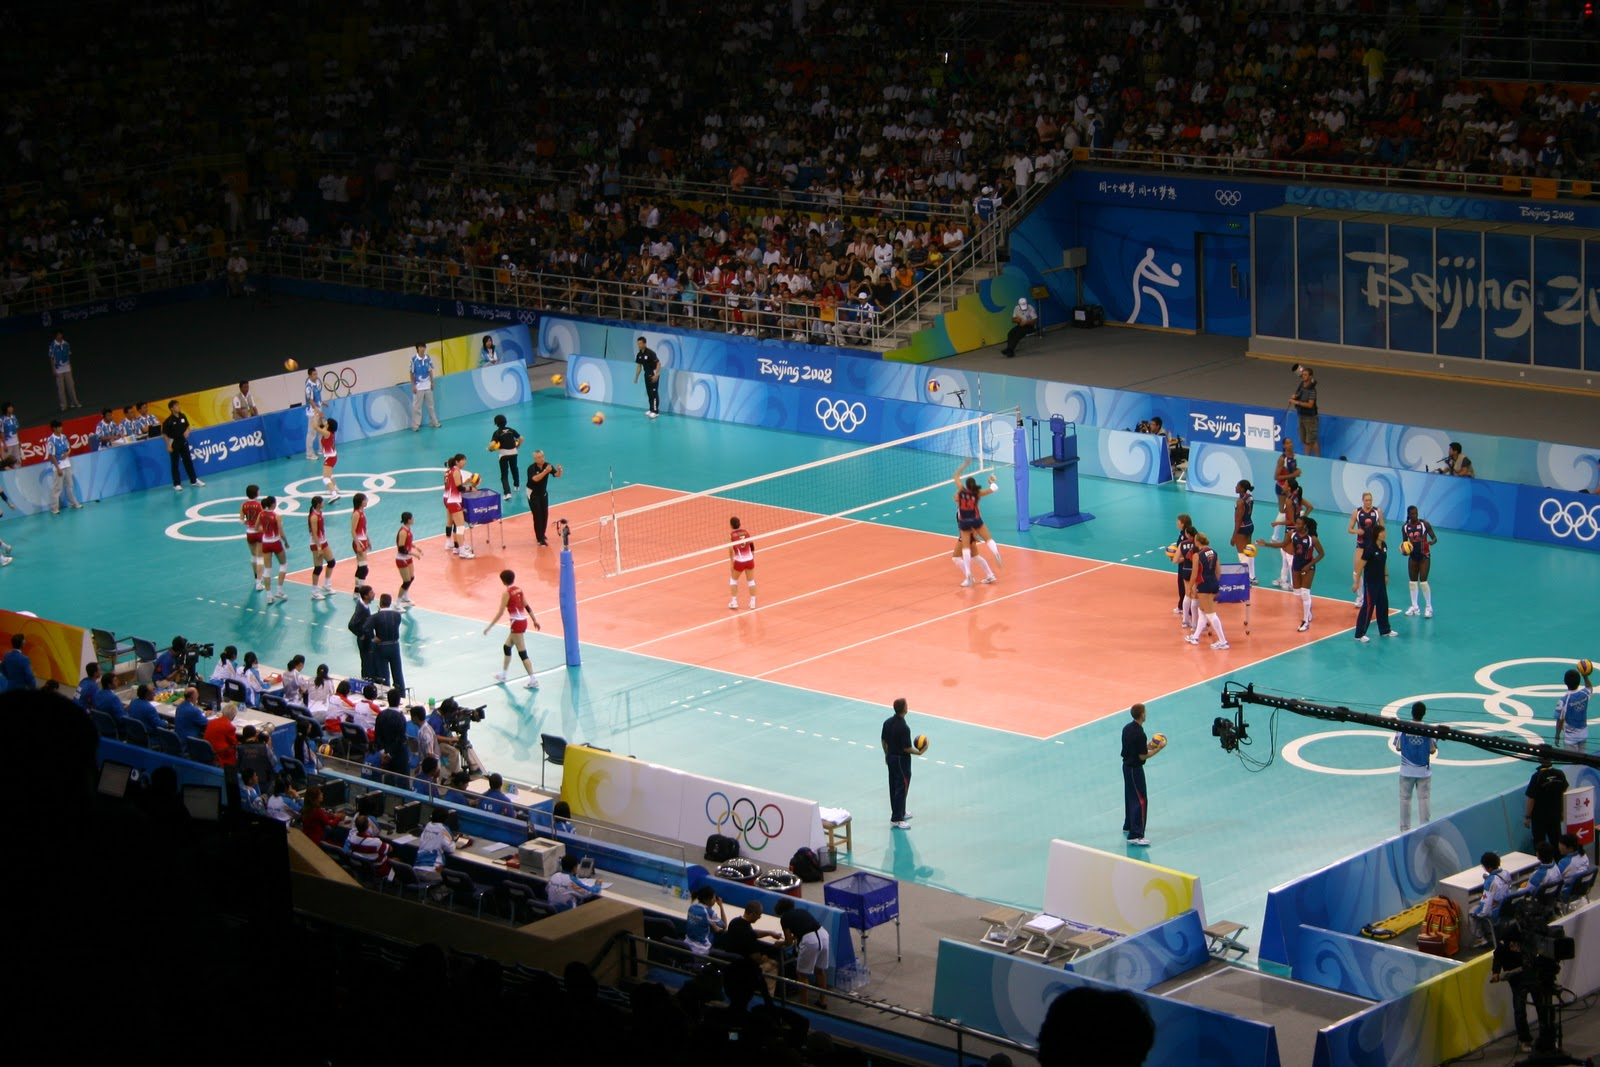 Physical Fitness & Me: Indoor Volleyball & Court Diagram